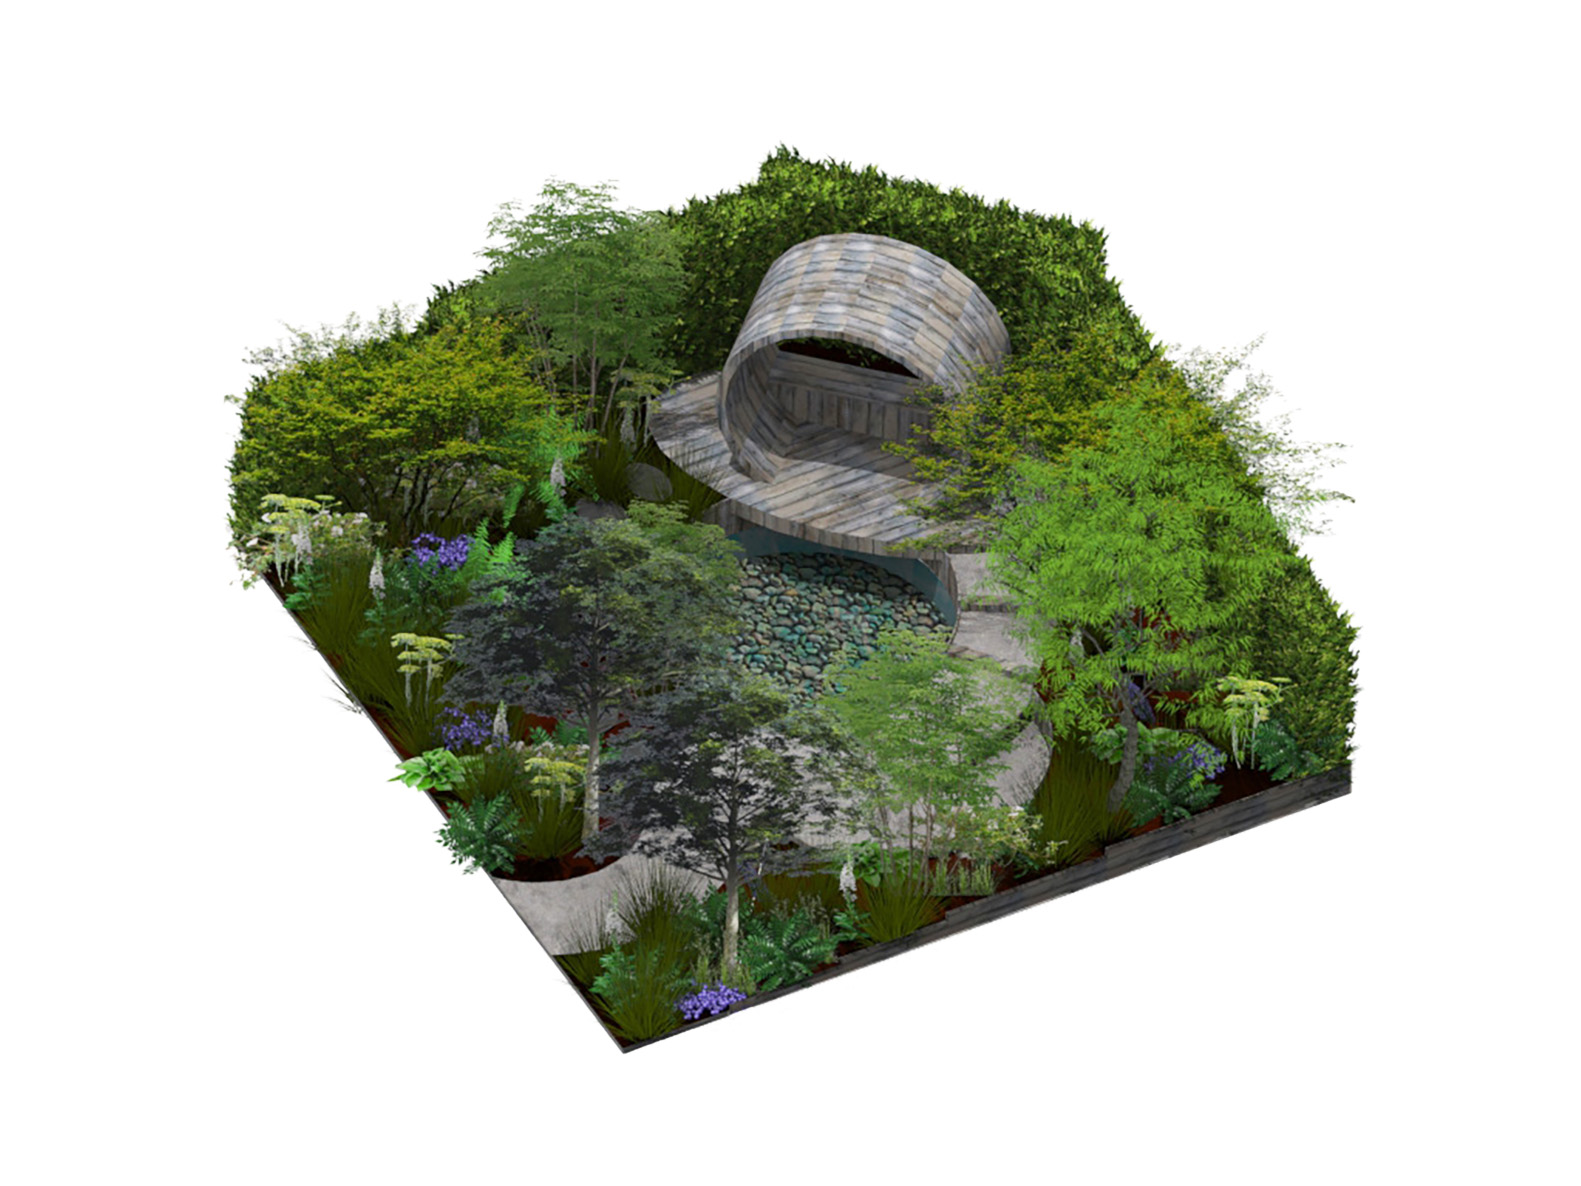 Hampton Court Flower Show garden designed by David Green and built by PC Landscapes